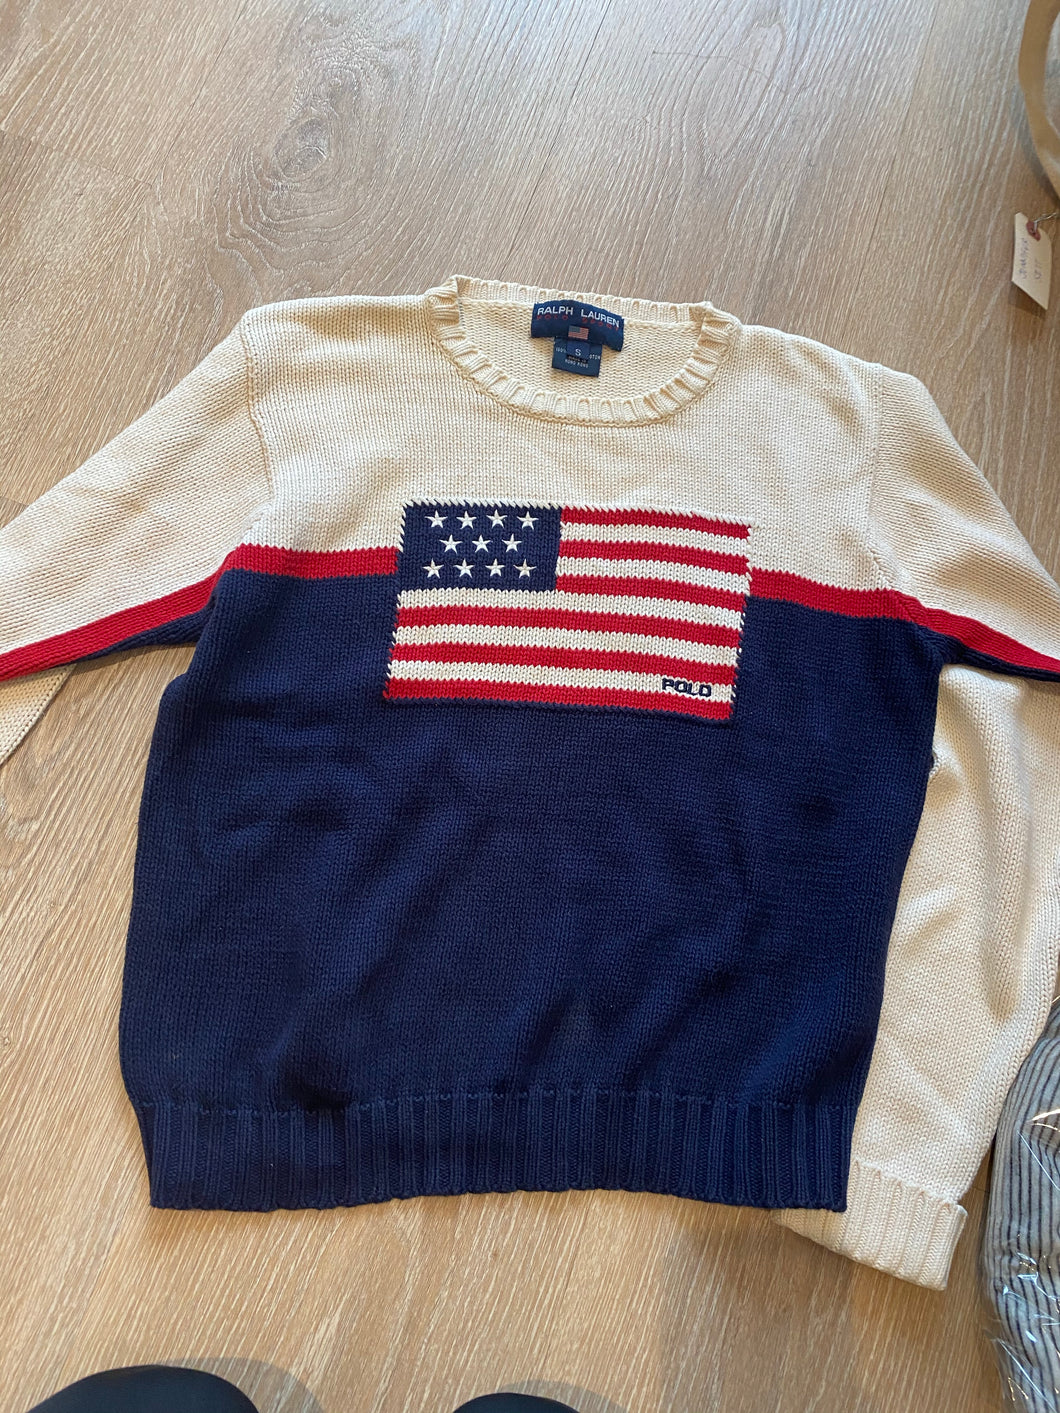 Vintage Ralph's Lauren sweater